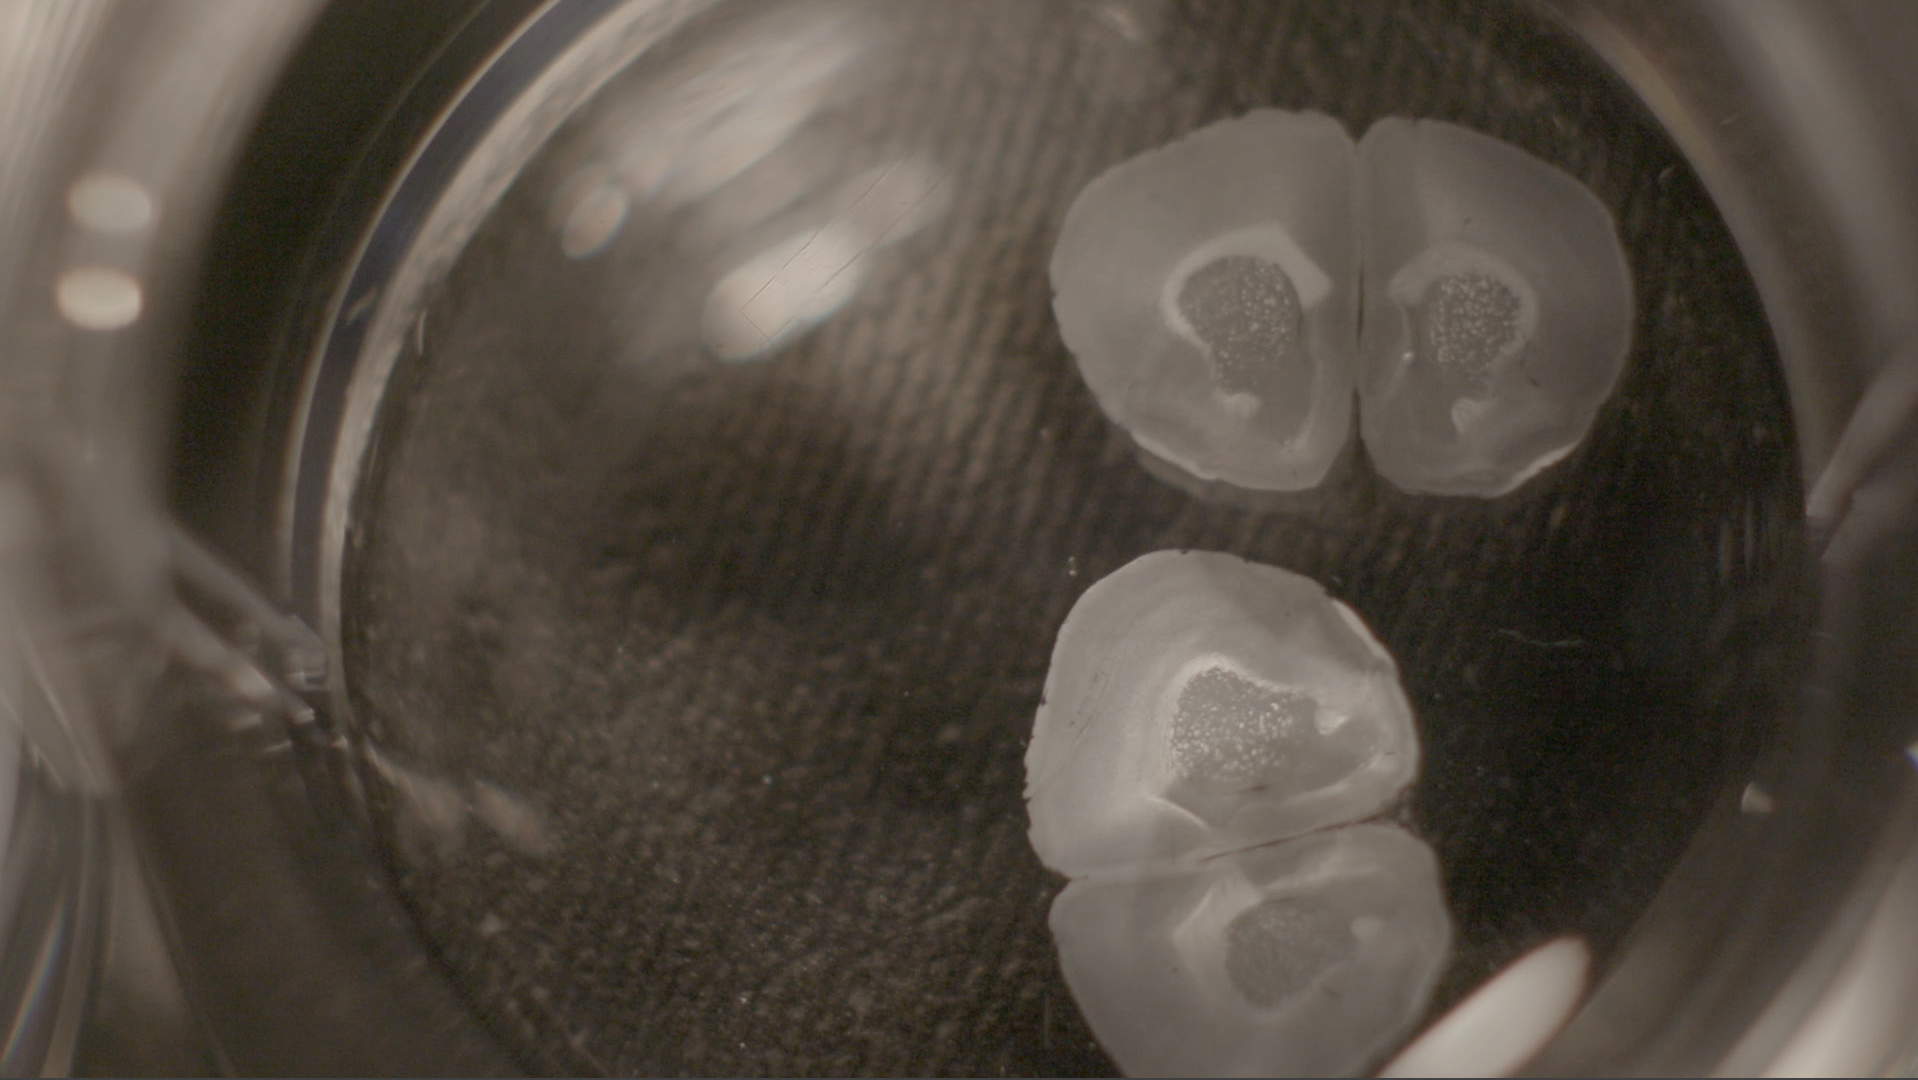 A couple stills from the film. Come see the finished piece at the  exhibit .